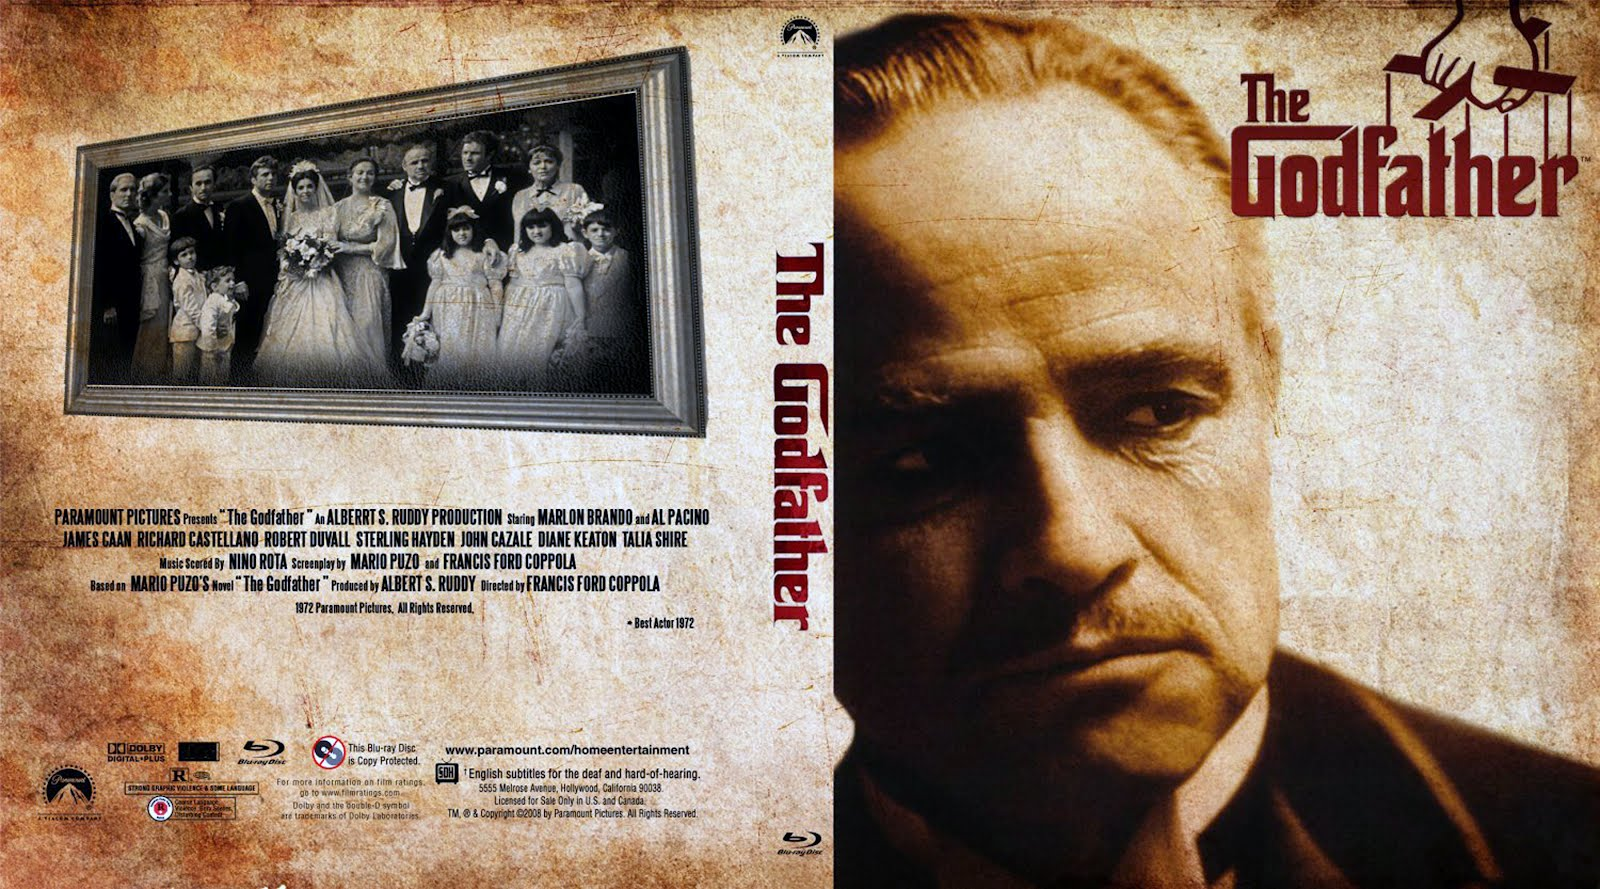 The Godfather Dvd Disk Cover